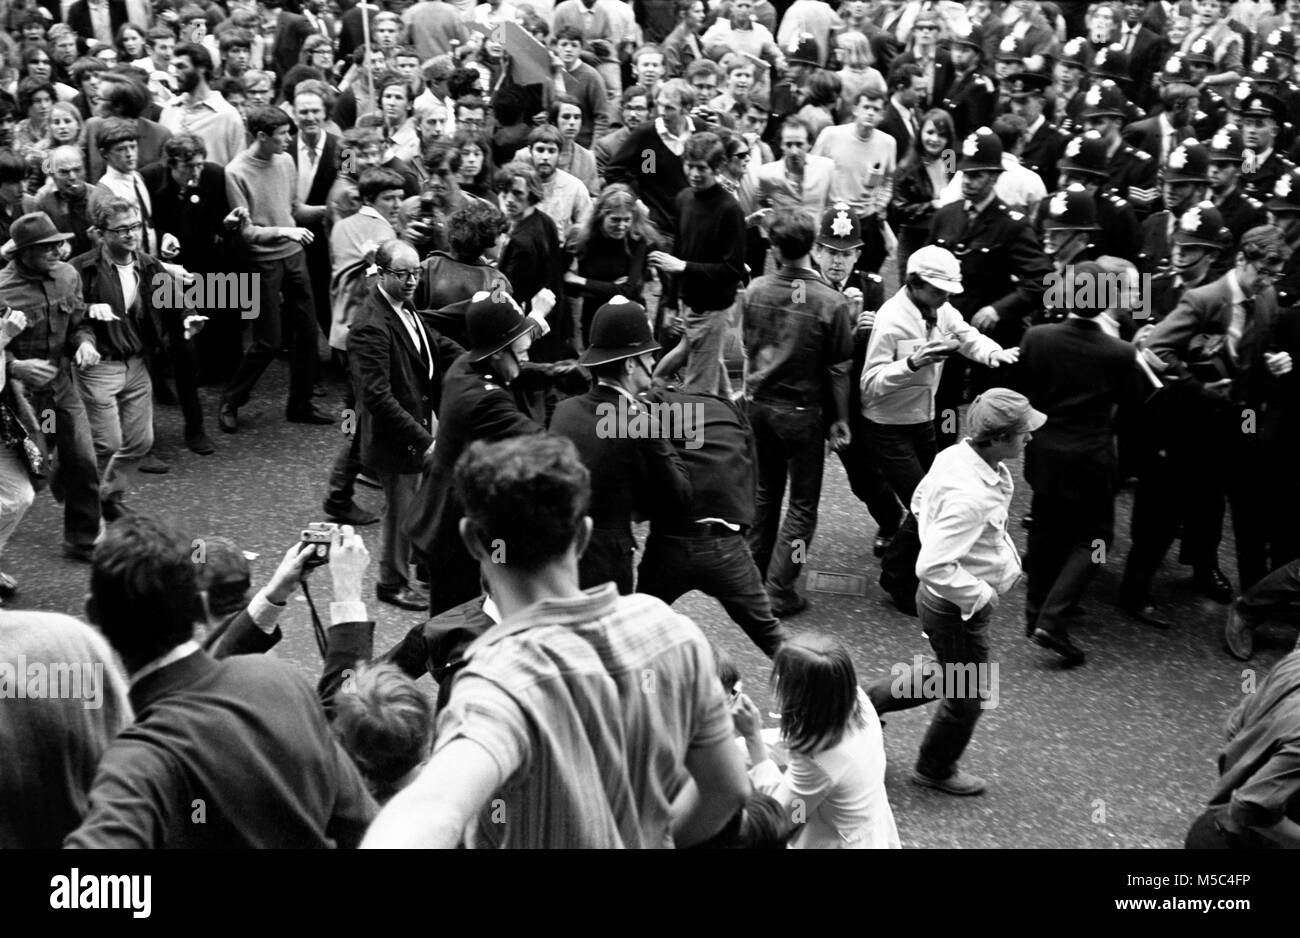 Anti-Vietnam war protest in London on 21 July 1968:  Demonstrators clash with police near the American Embassy in Stock Photo